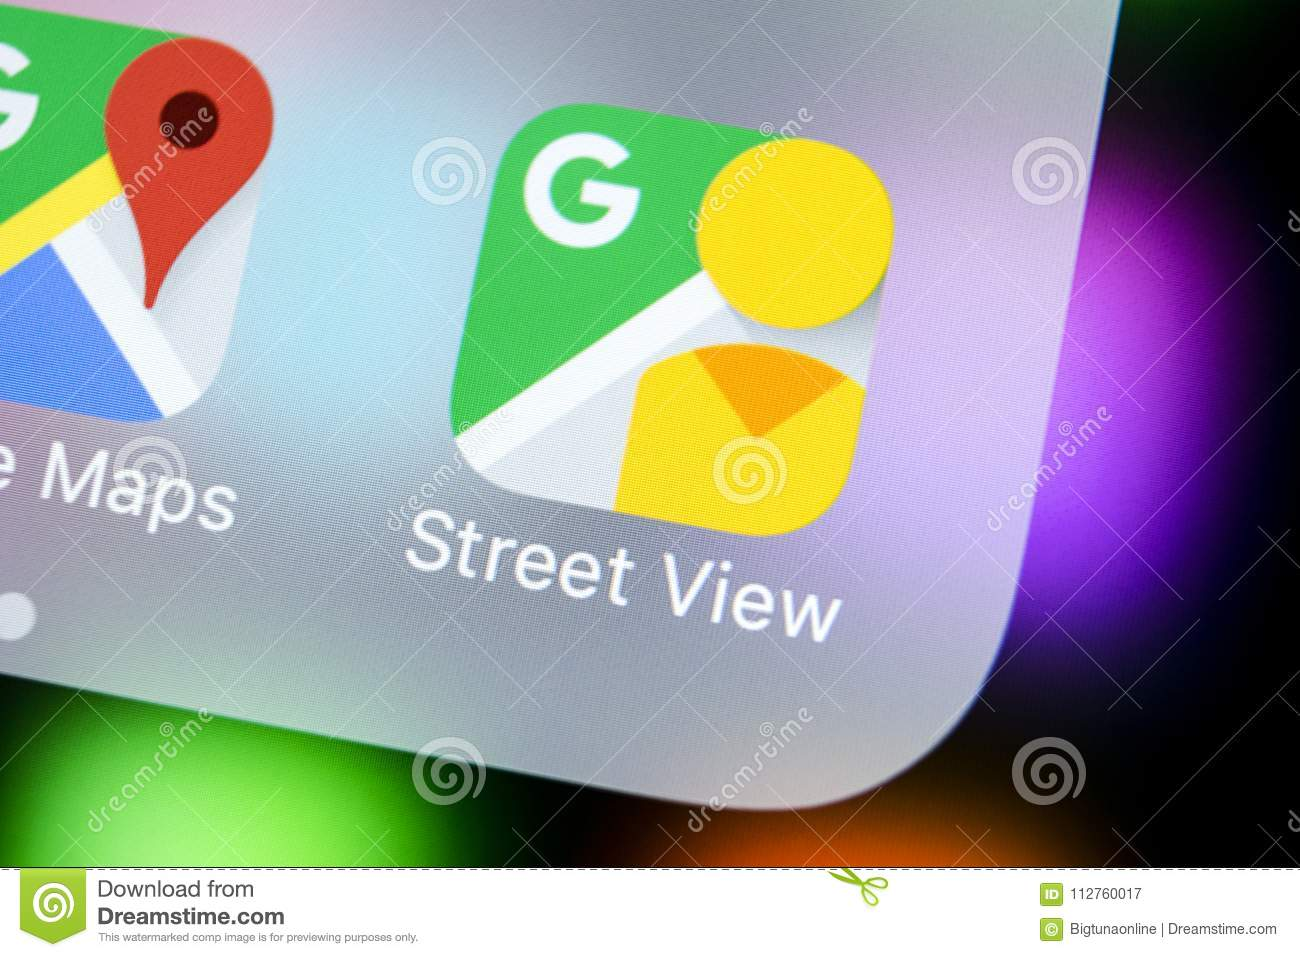 Google Street View Application Icon On Apple IPhone X Screen ... on google street view paris france, google street view in latin america, house from street view, google street view privacy concerns, google street view in oceania, funny google street view, google street view in the united states, competition of google street view, google earth street view, google street view in asia, address from street level view, find street view, google earth map, google earth home, vpike street view, google satellite map, mapquest street view, google street view in europe, google street view in africa,